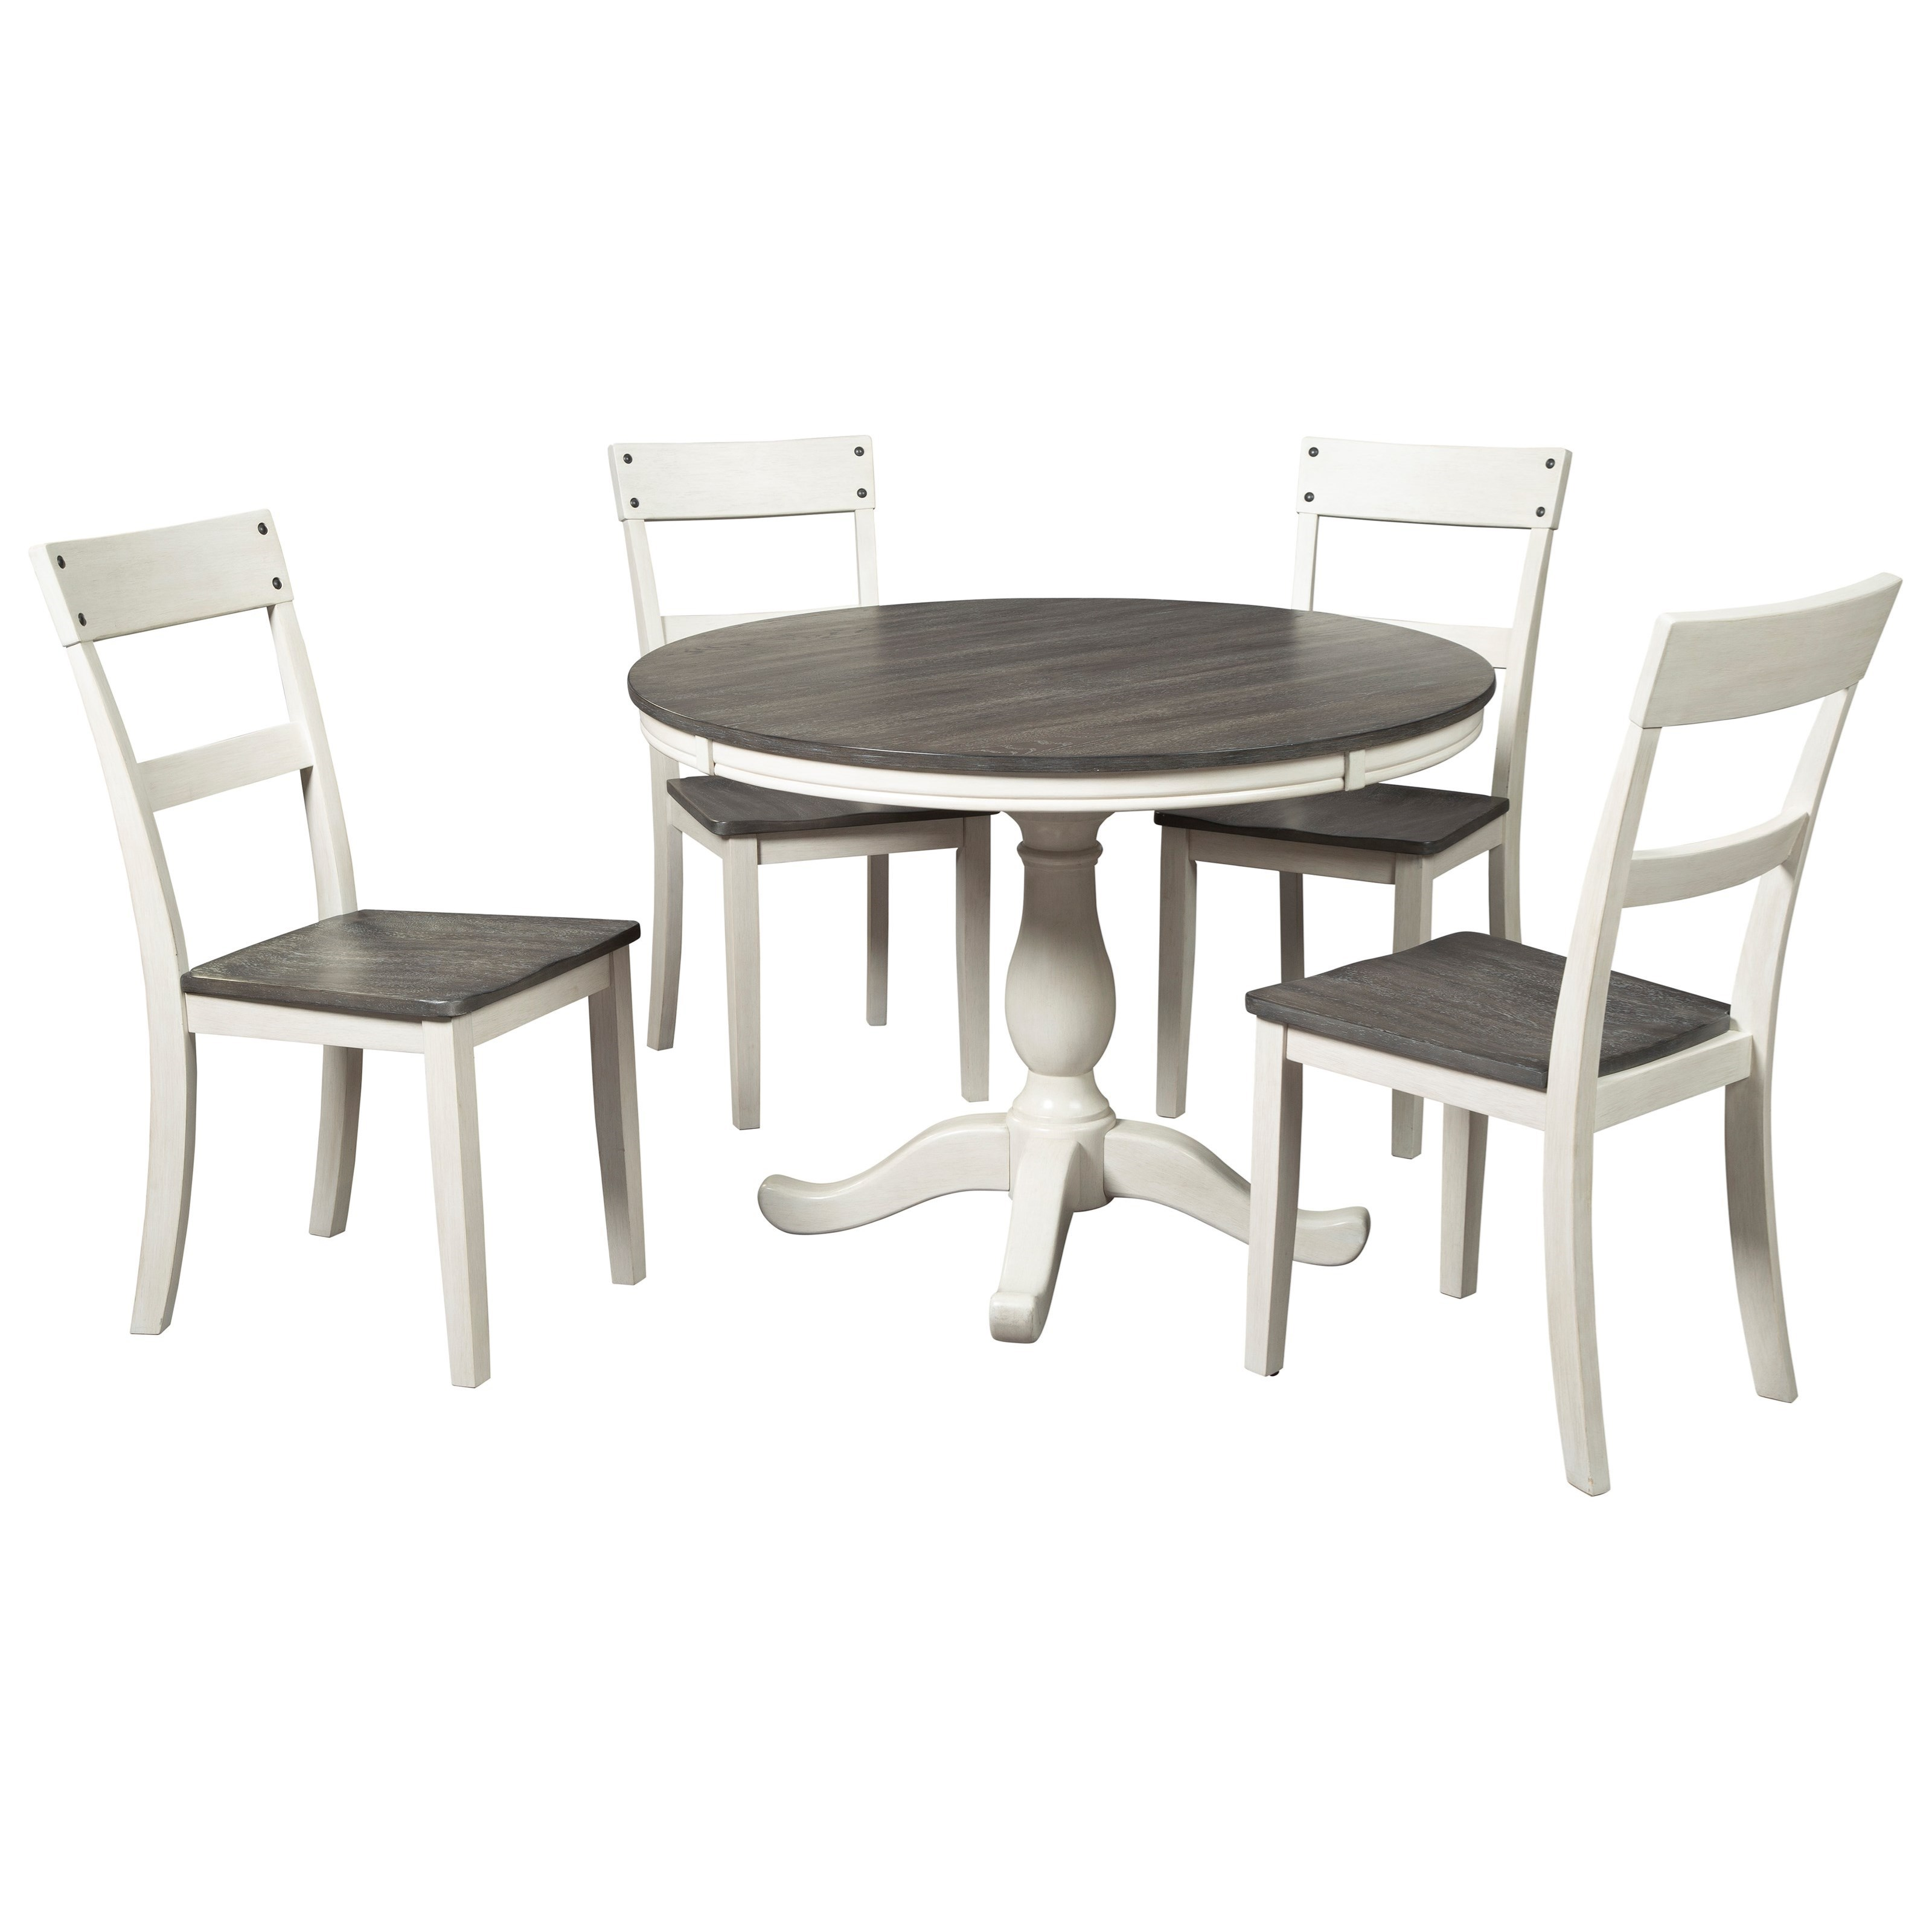 Signature Design By Ashley Nelling Farmhouse Two Tone 5 Piece Round Dining Table Set Royal Furniture Dining 5 Piece Sets